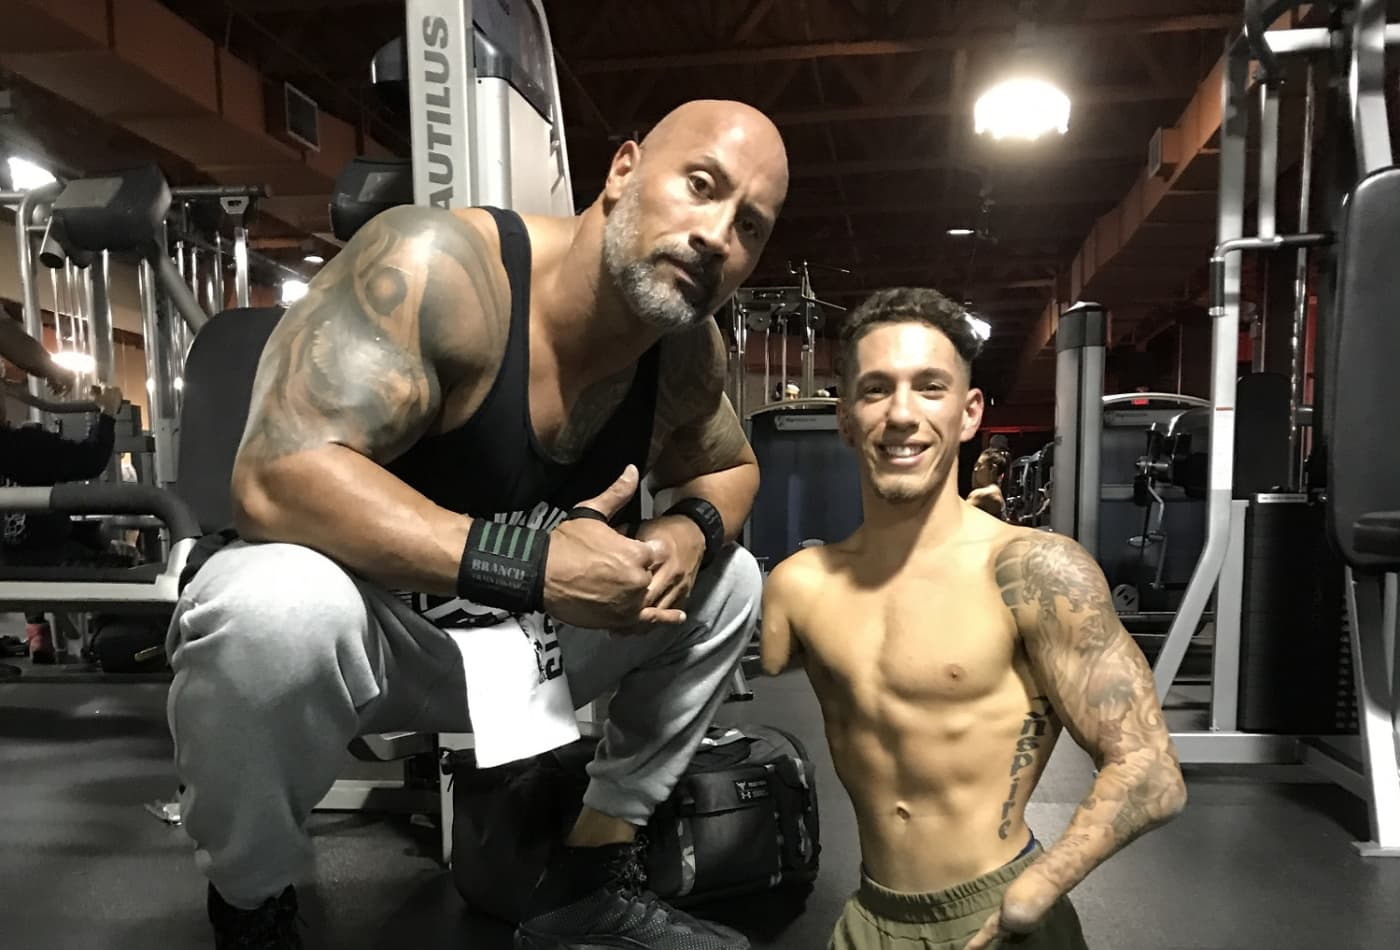 Here's the inspiring 22-year-old bodybuilder who Dwayne 'The Rock' Johnson asked to meet